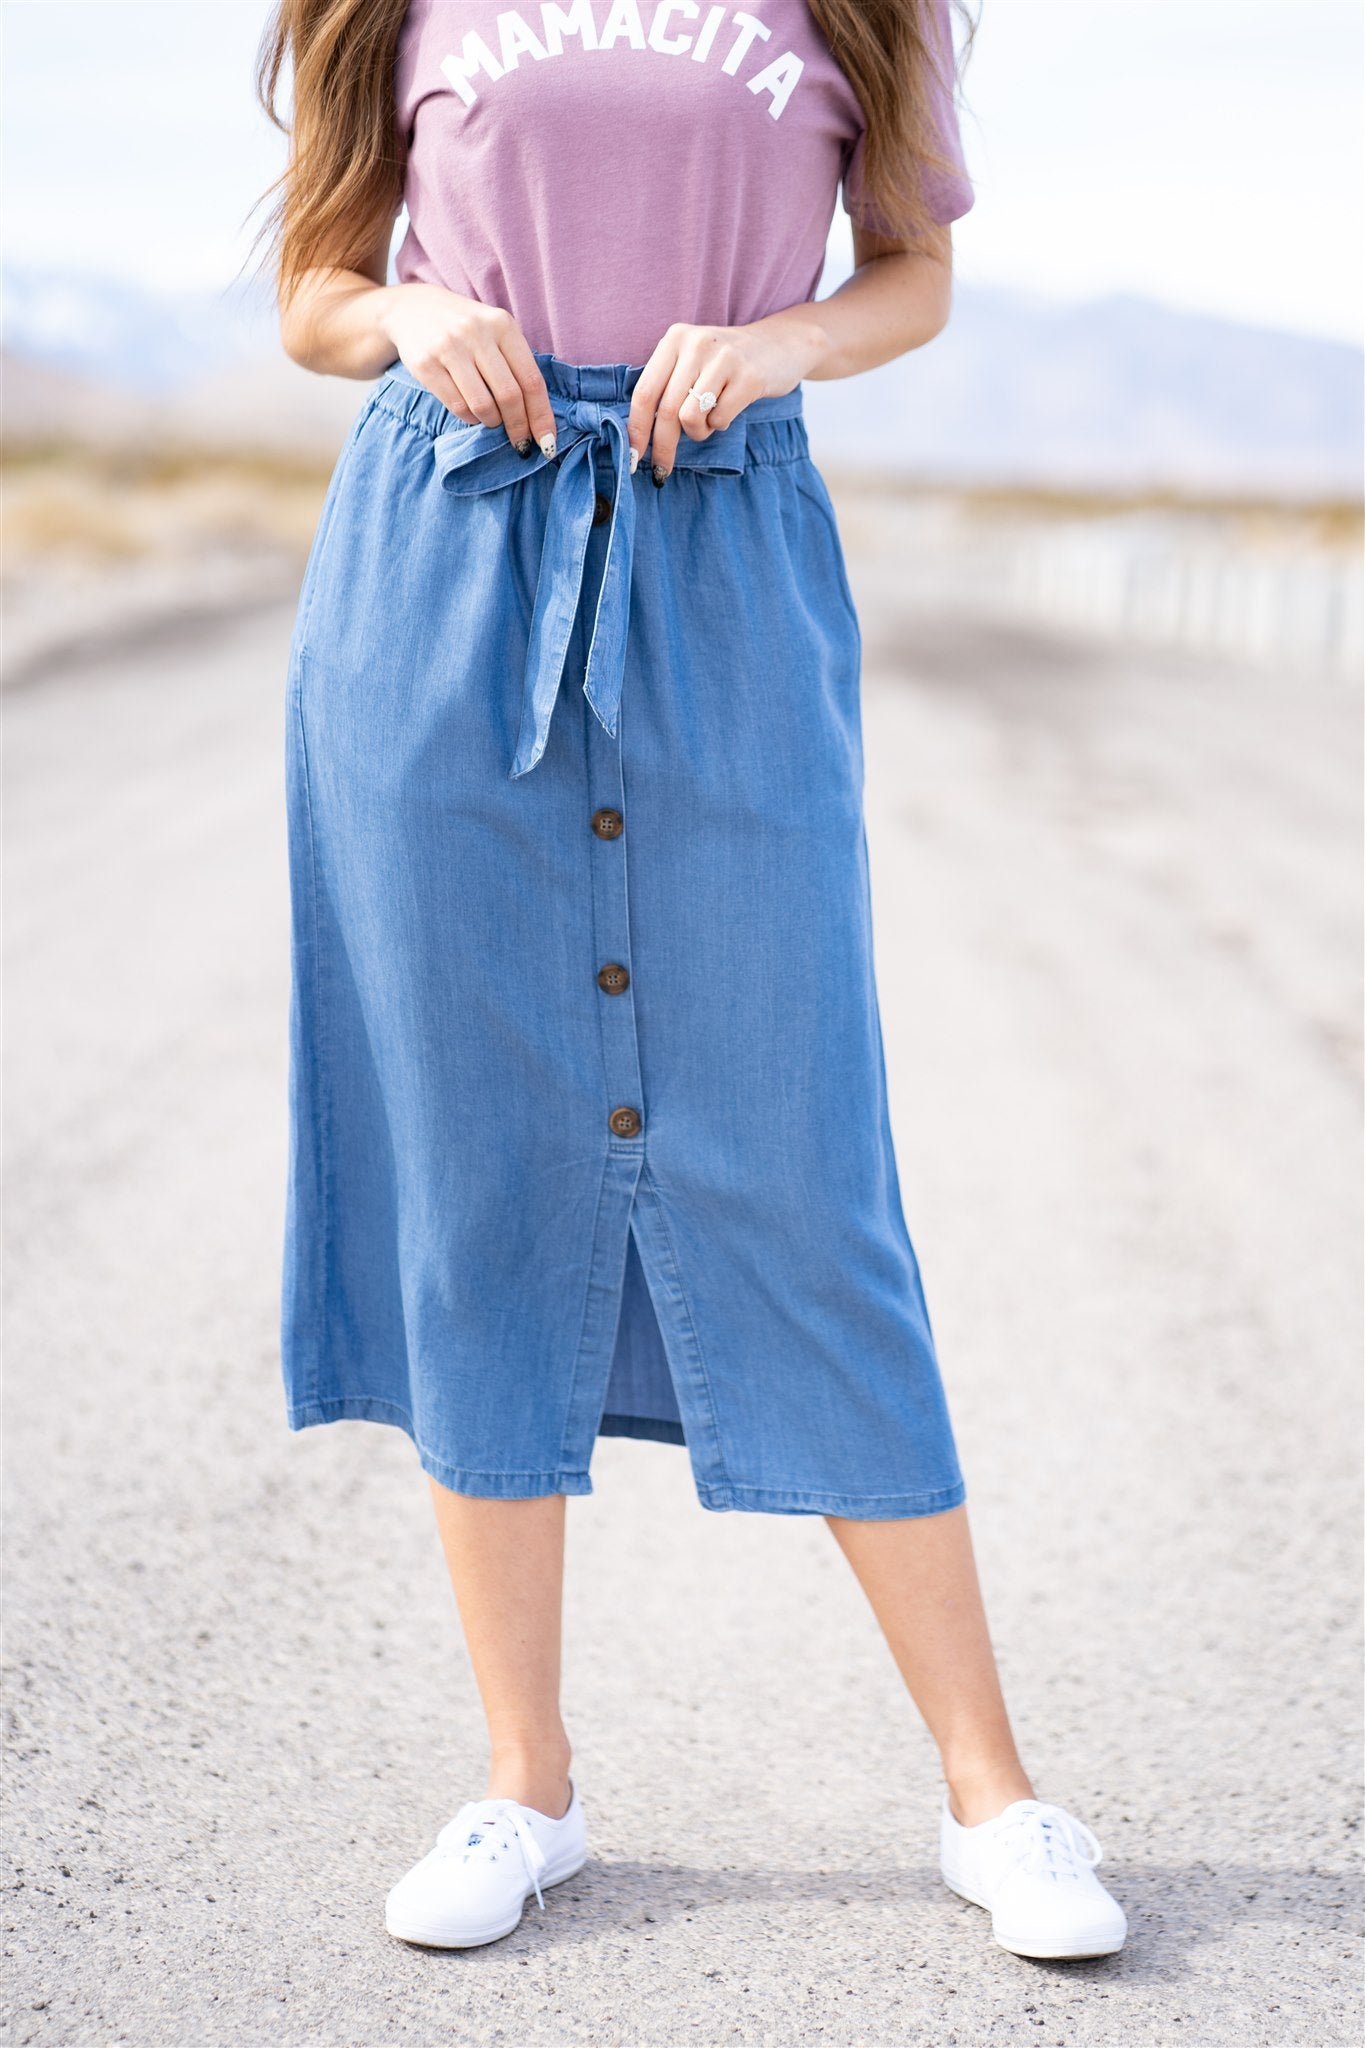 THE BERKELEY BUTTON DOWN SKIRT IN BLUE DENIM